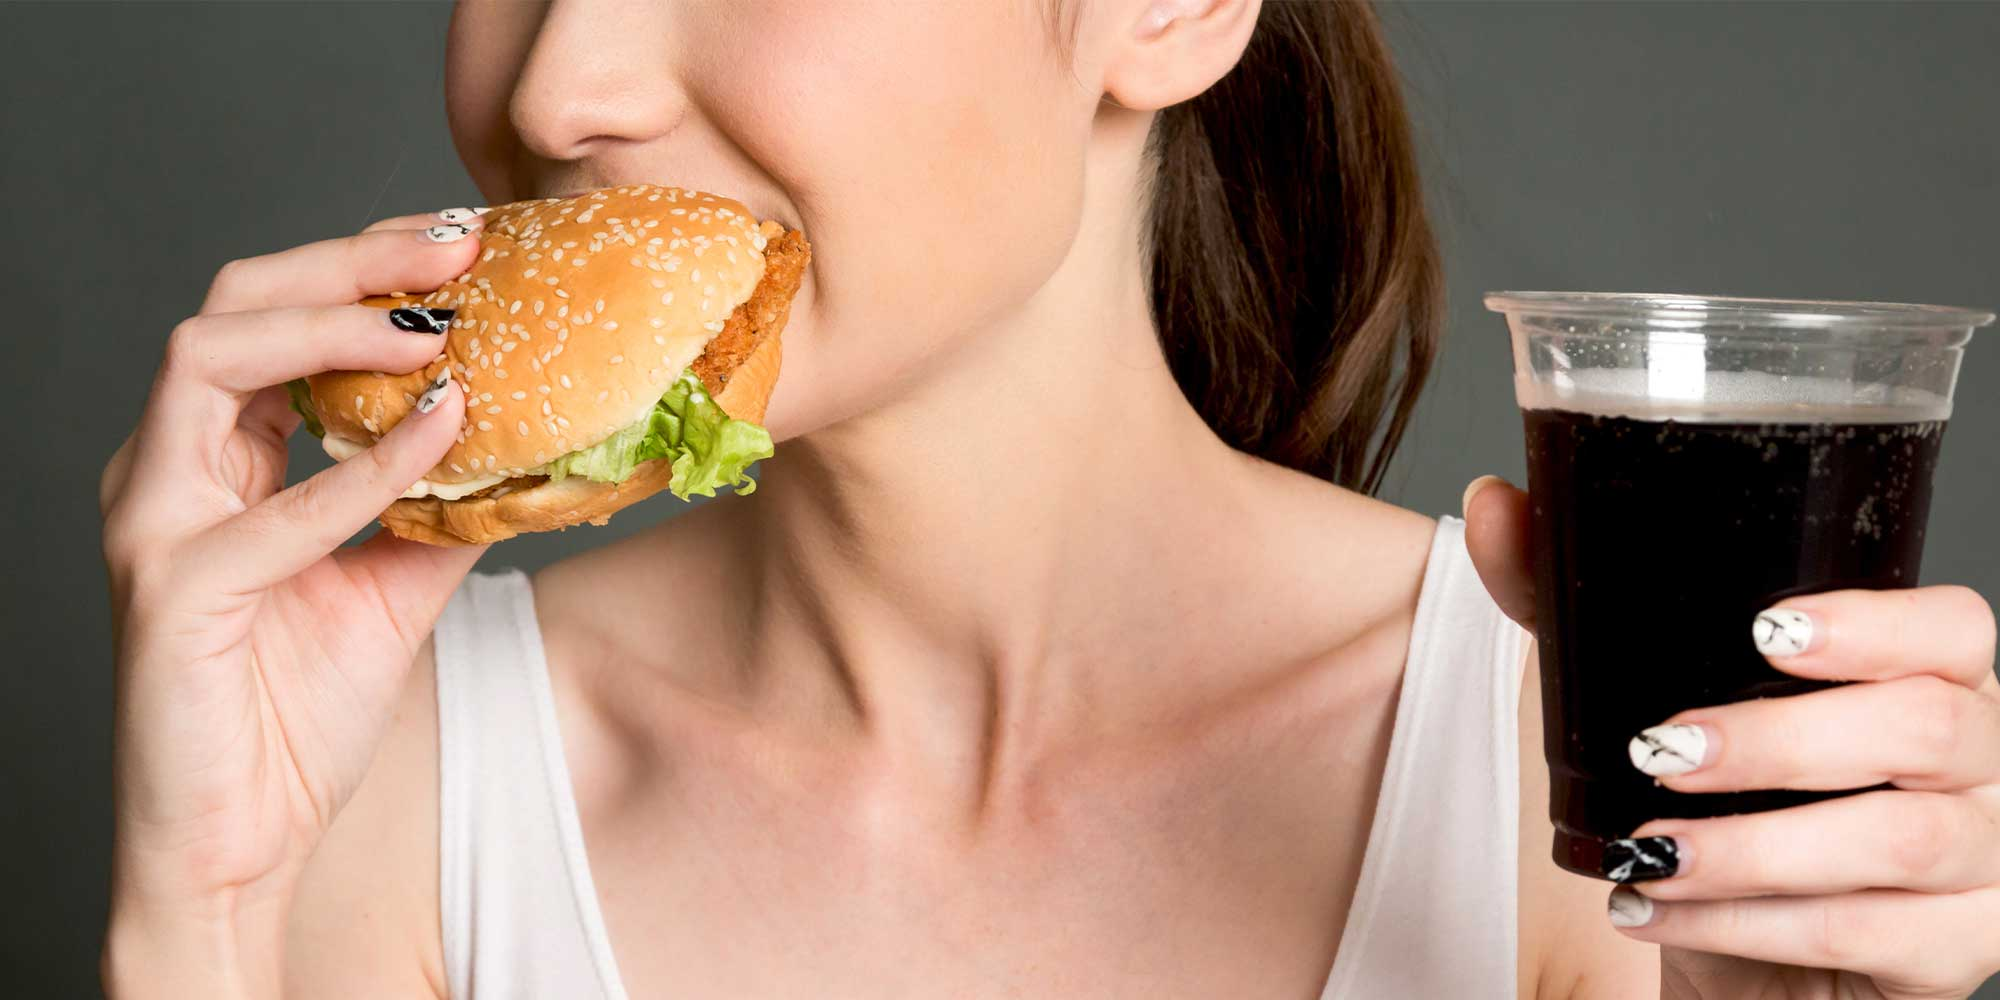 woman eating a chicken sandwich